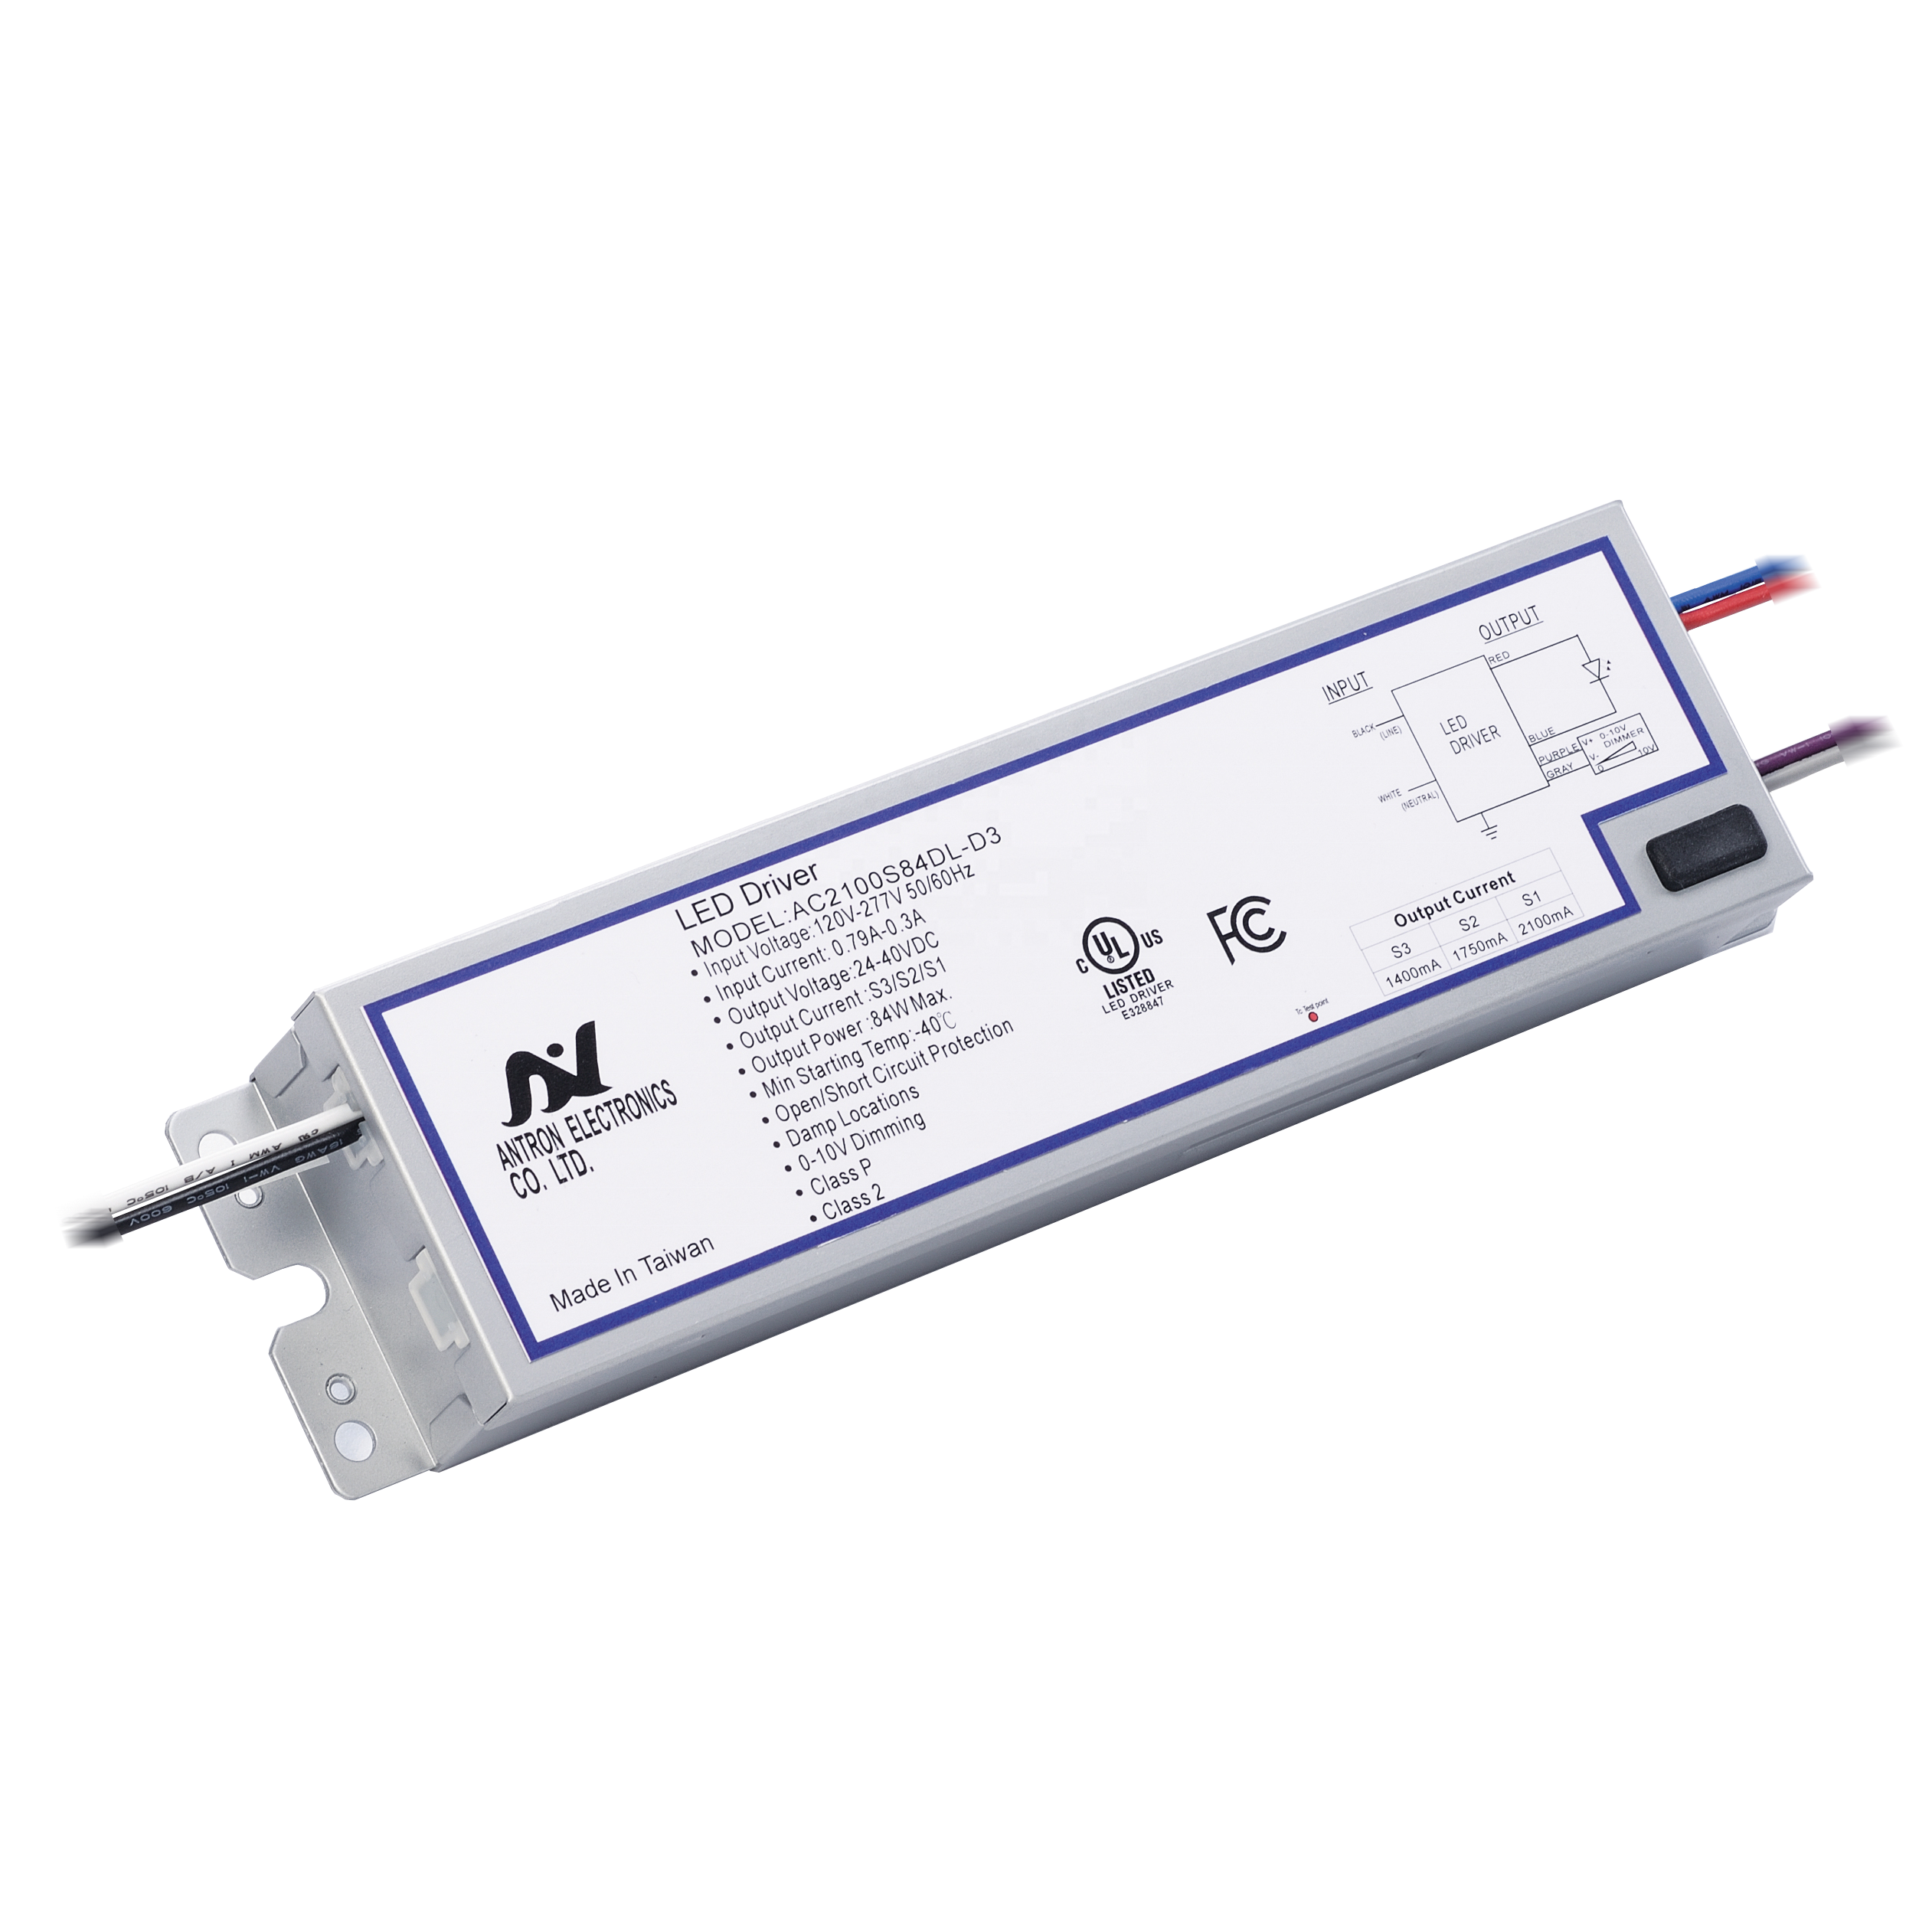 4 Power Options 98W Surge Protection LED Driver